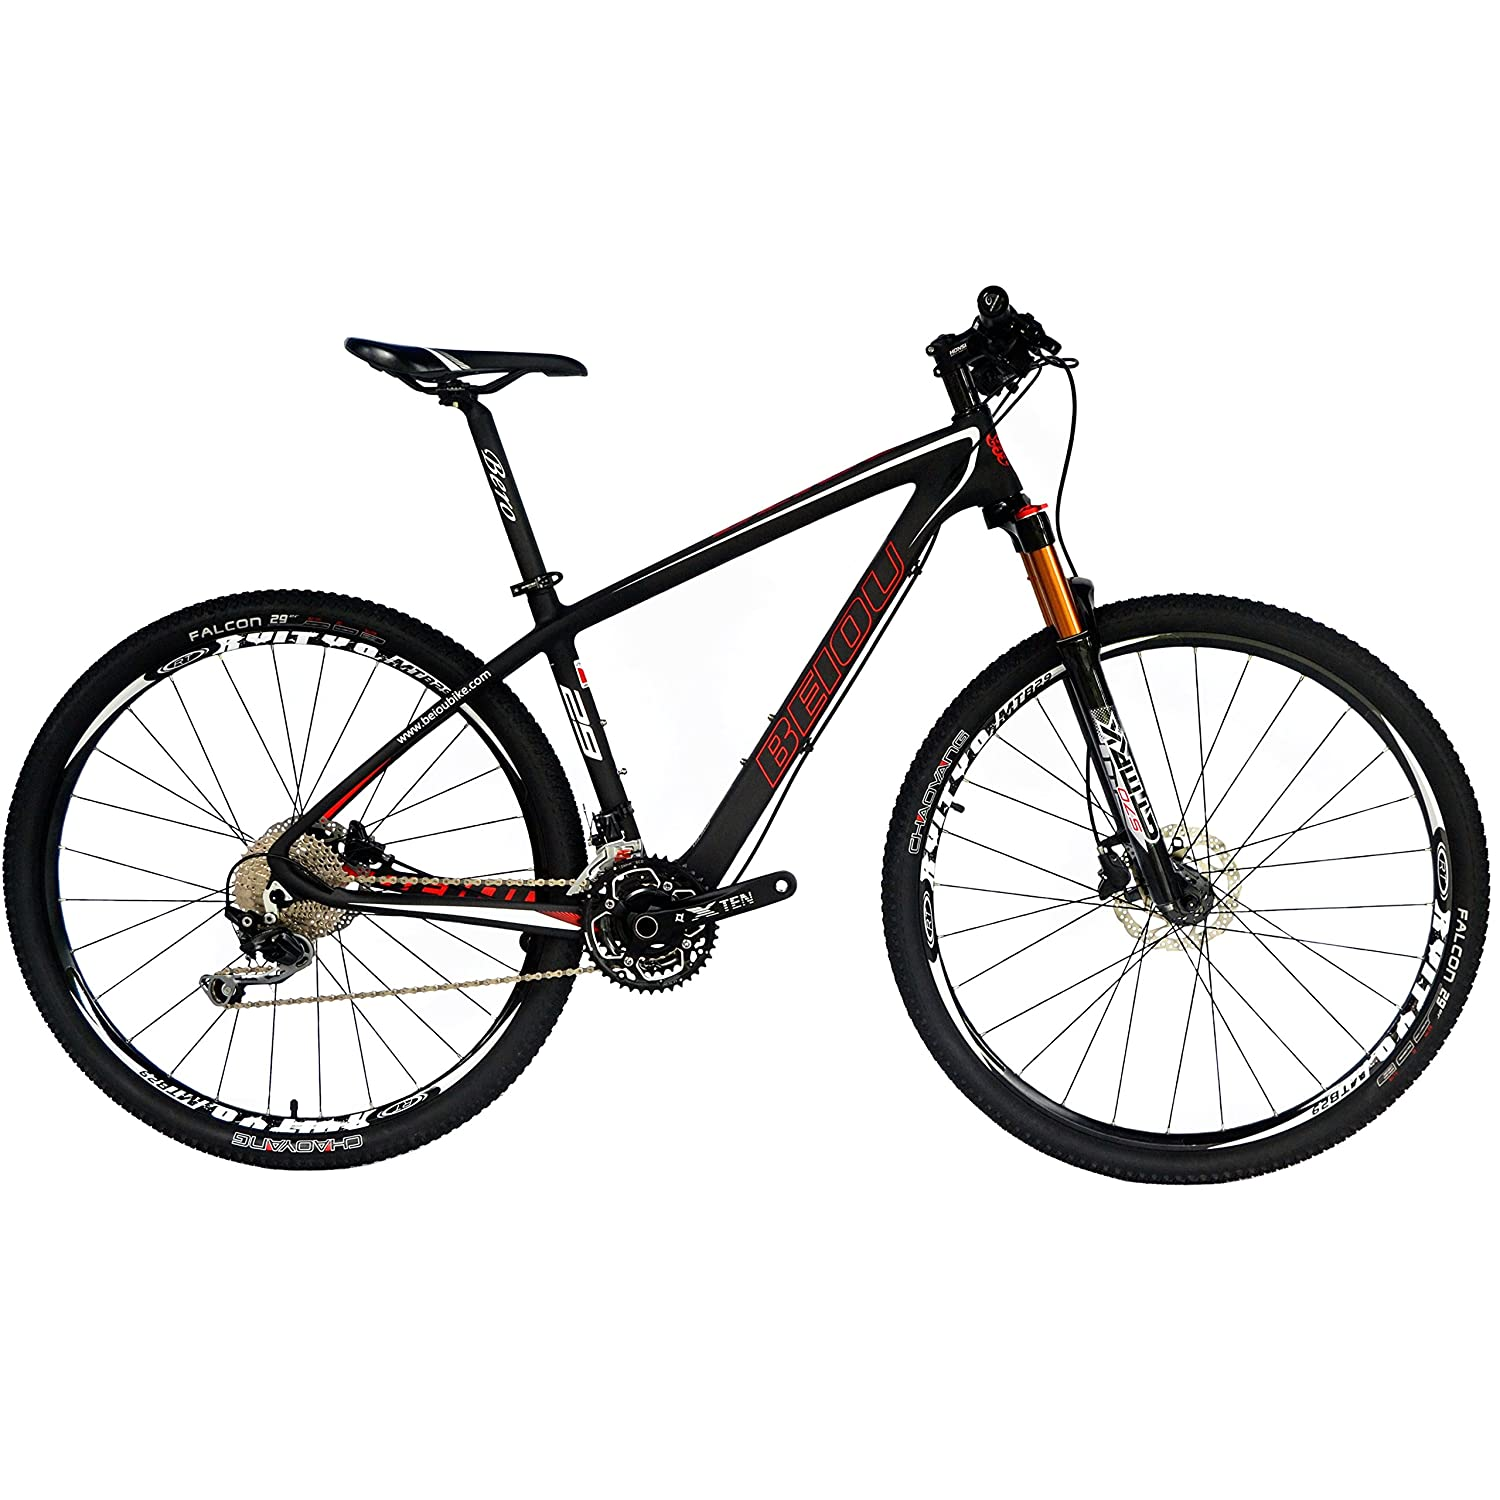 BEIOU Carbon Fiber Hardtail Mountain Bike